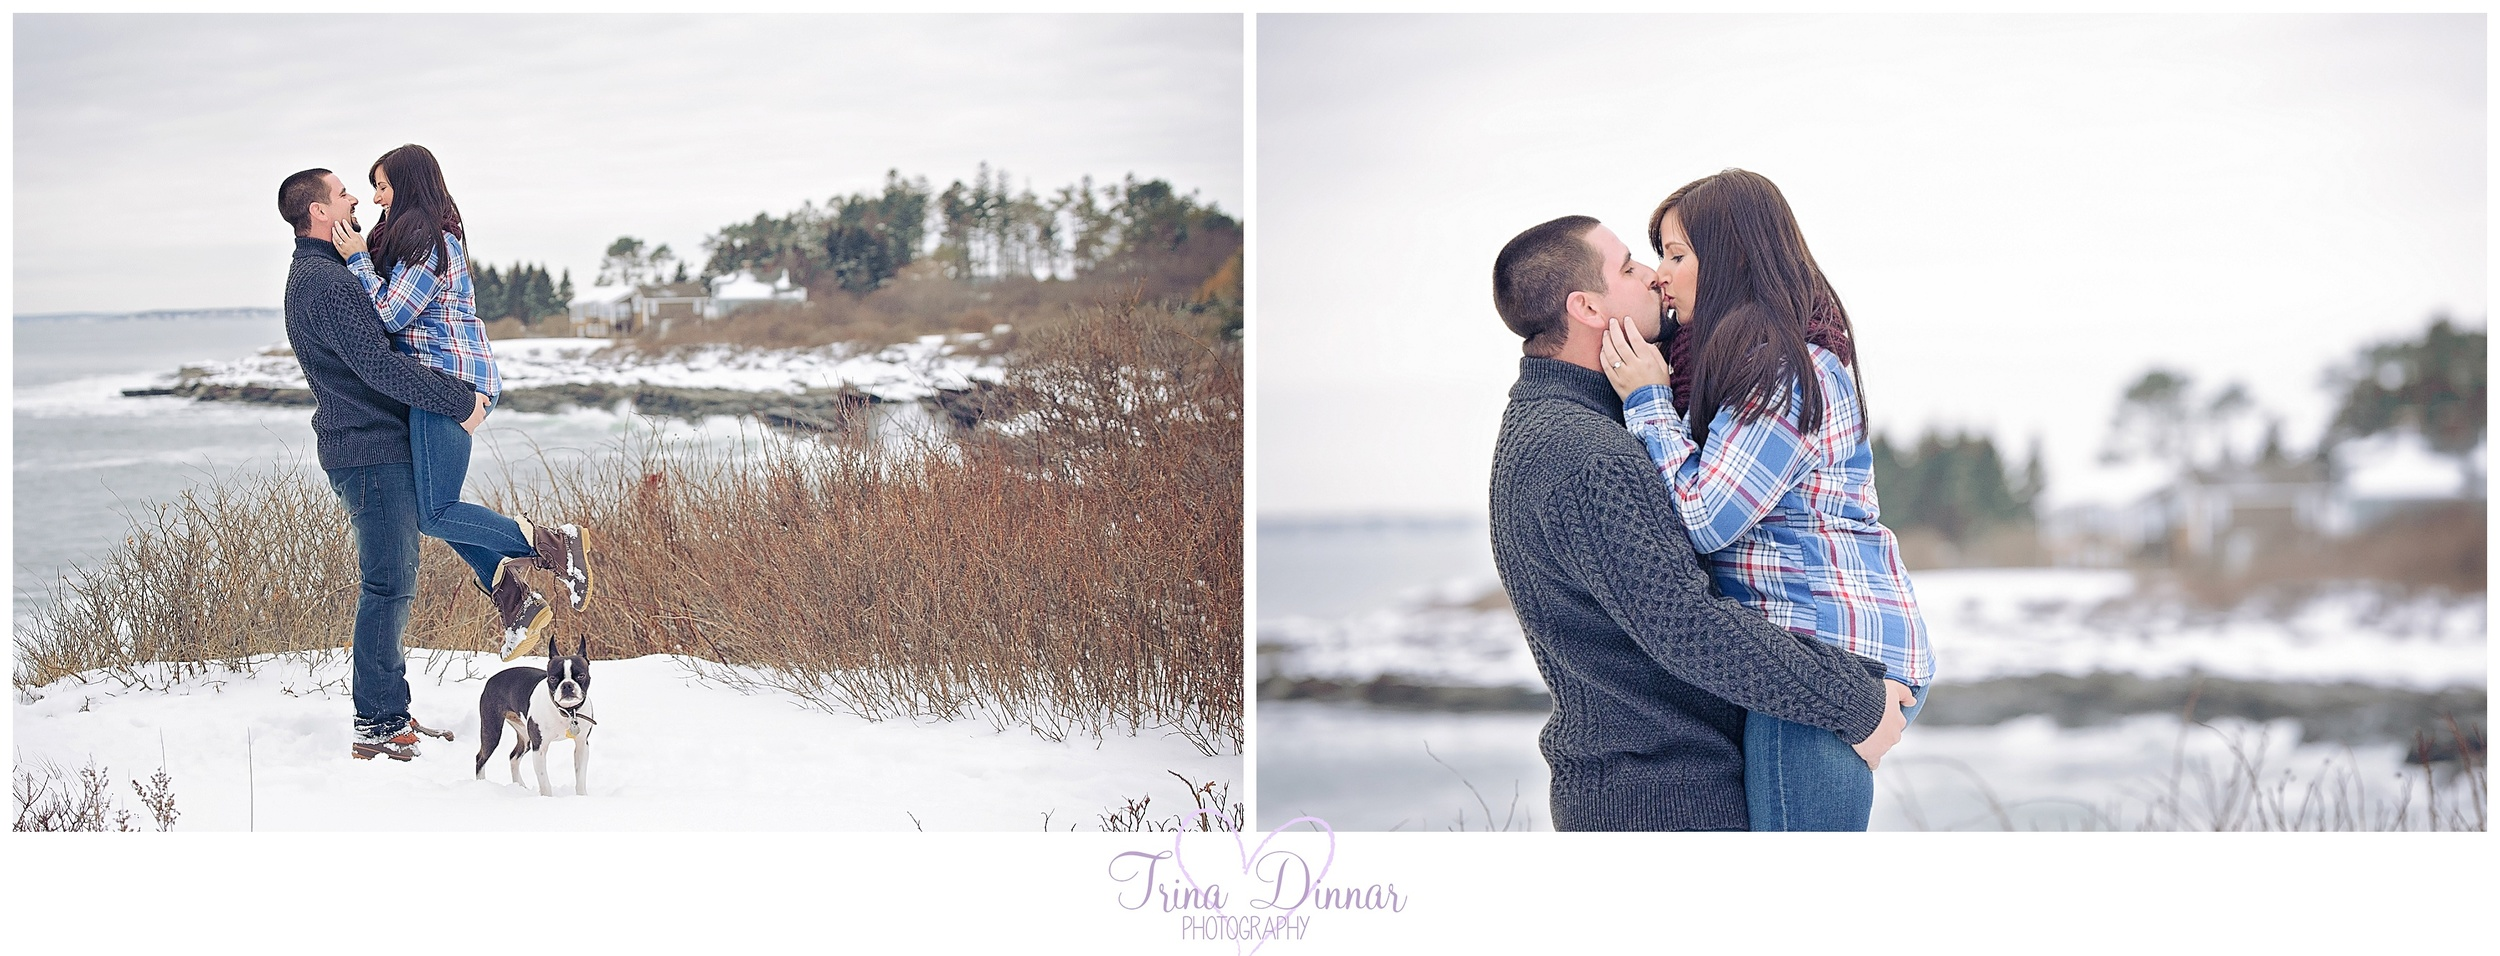 Engagement photography on the Coast of Maine.